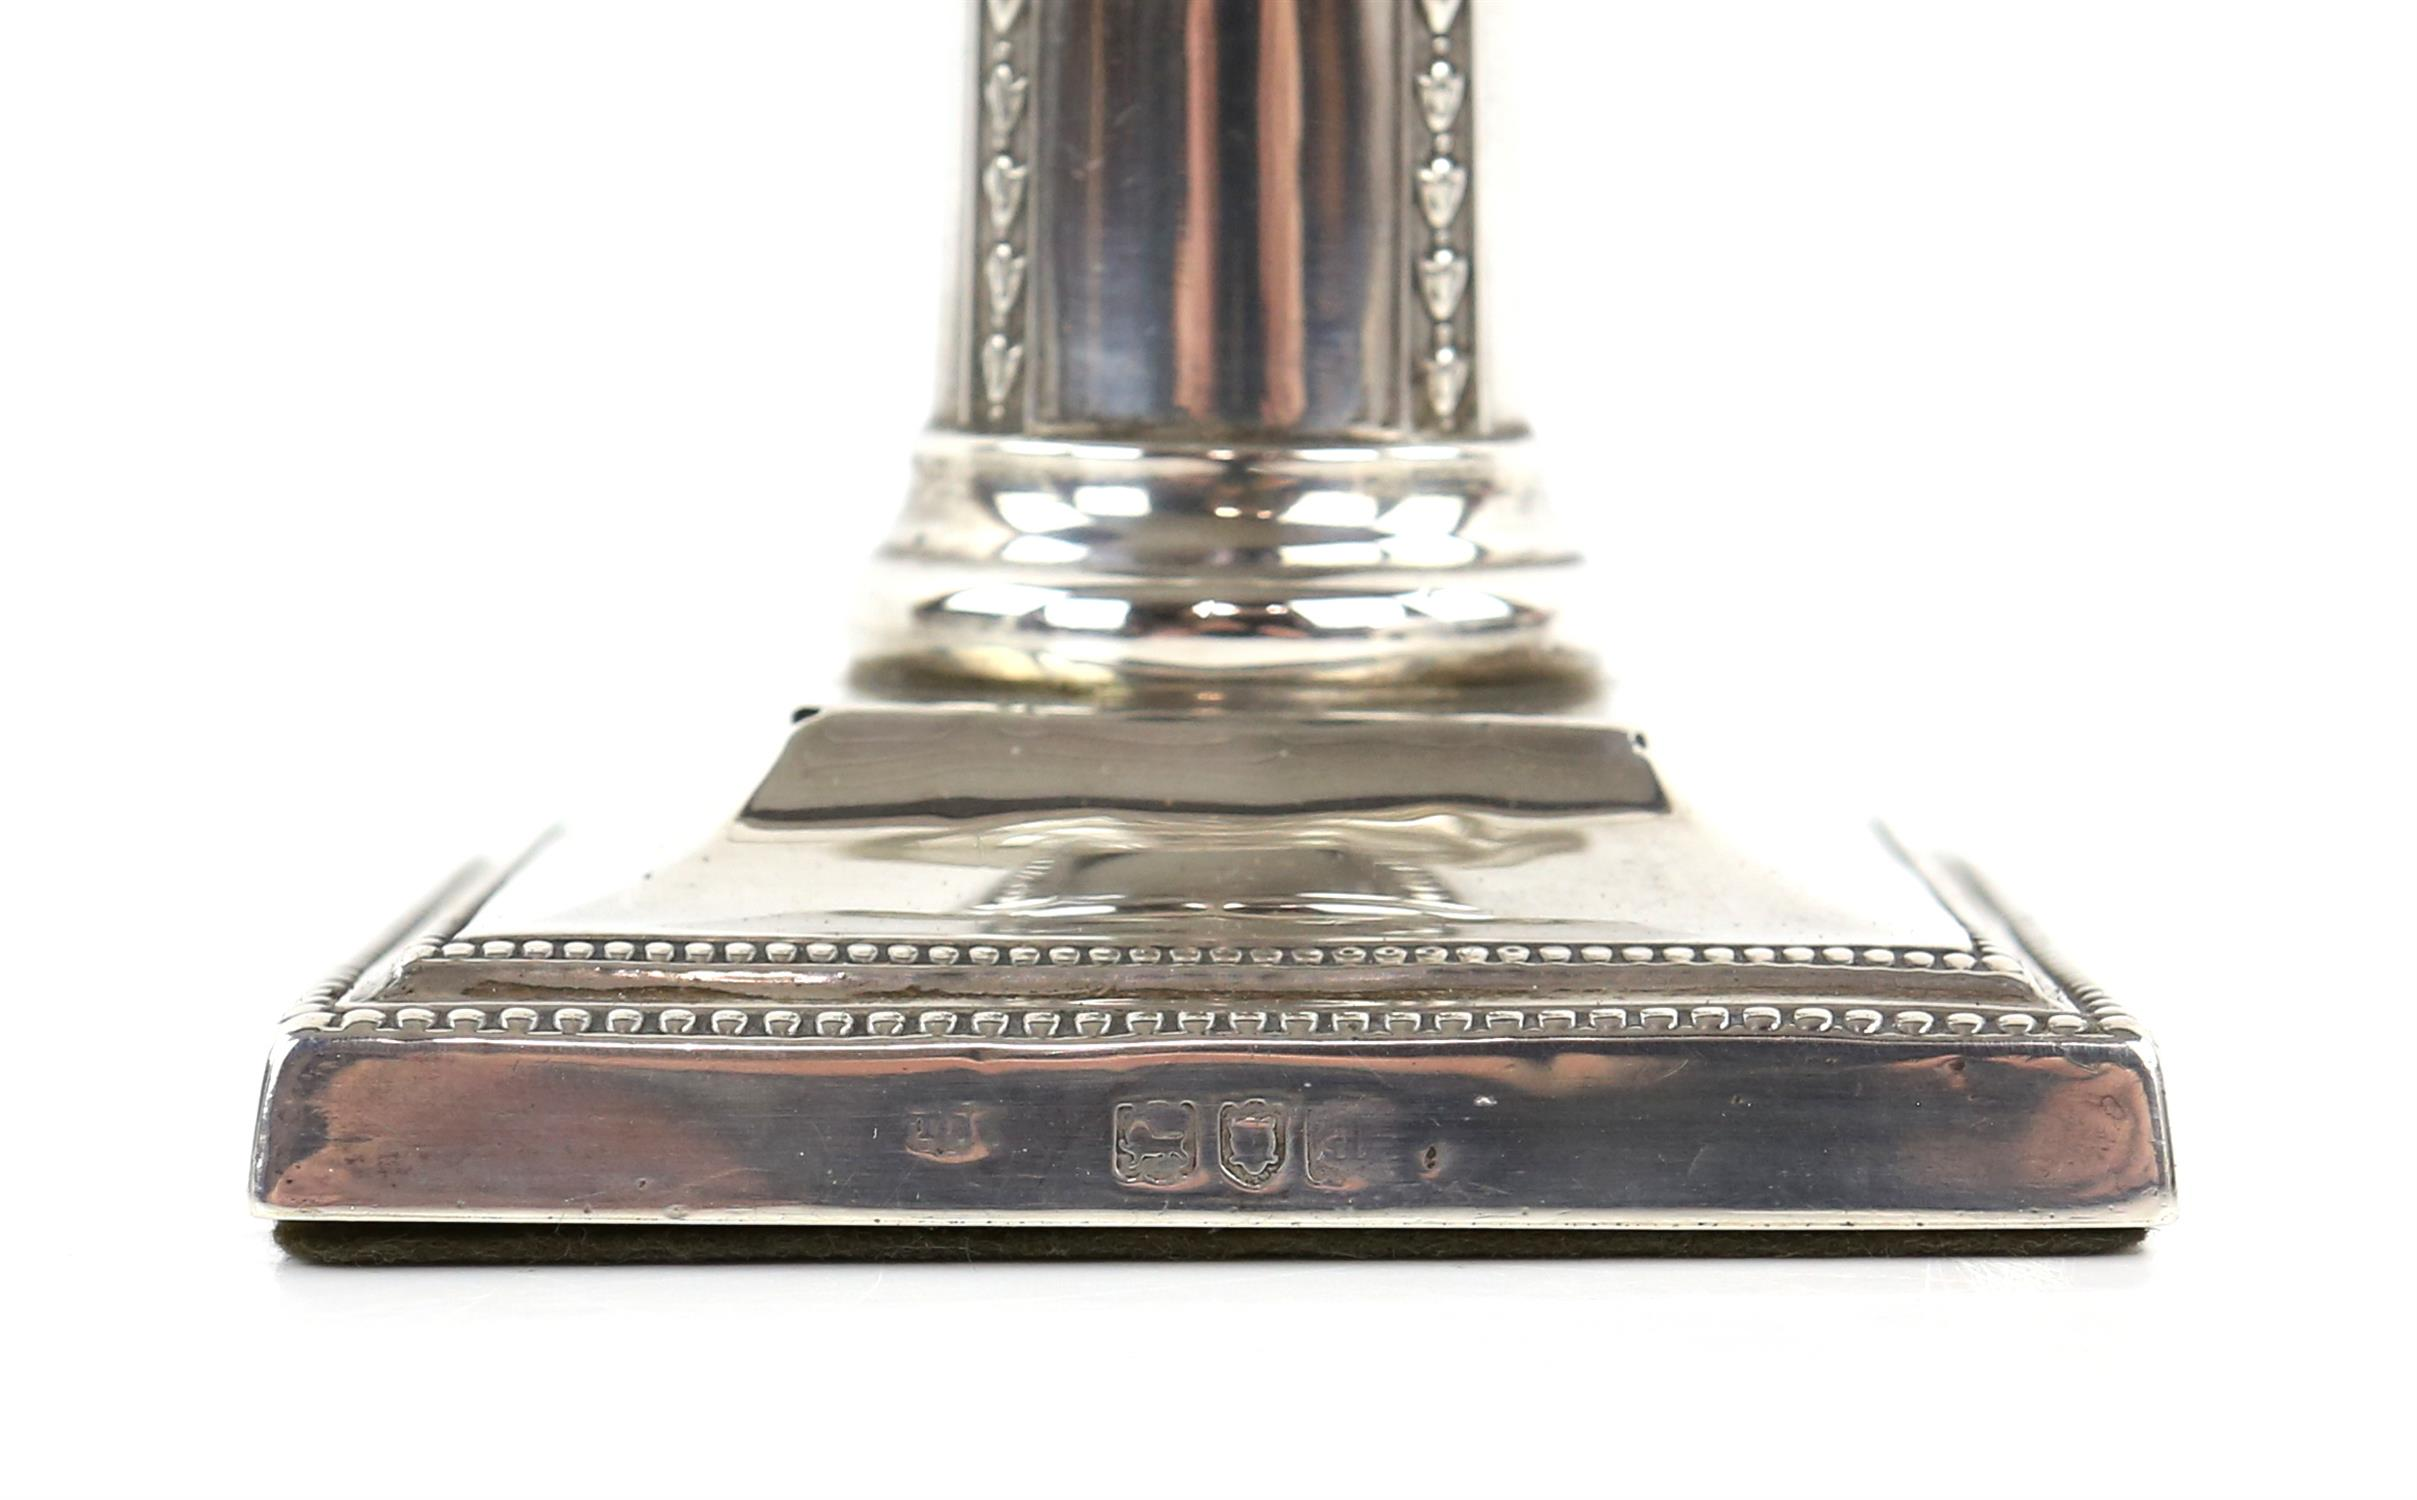 Pair of Victorian silver candlesticks with ribbon and swag decoration by Thomas Bradbury & Sons - Image 3 of 10